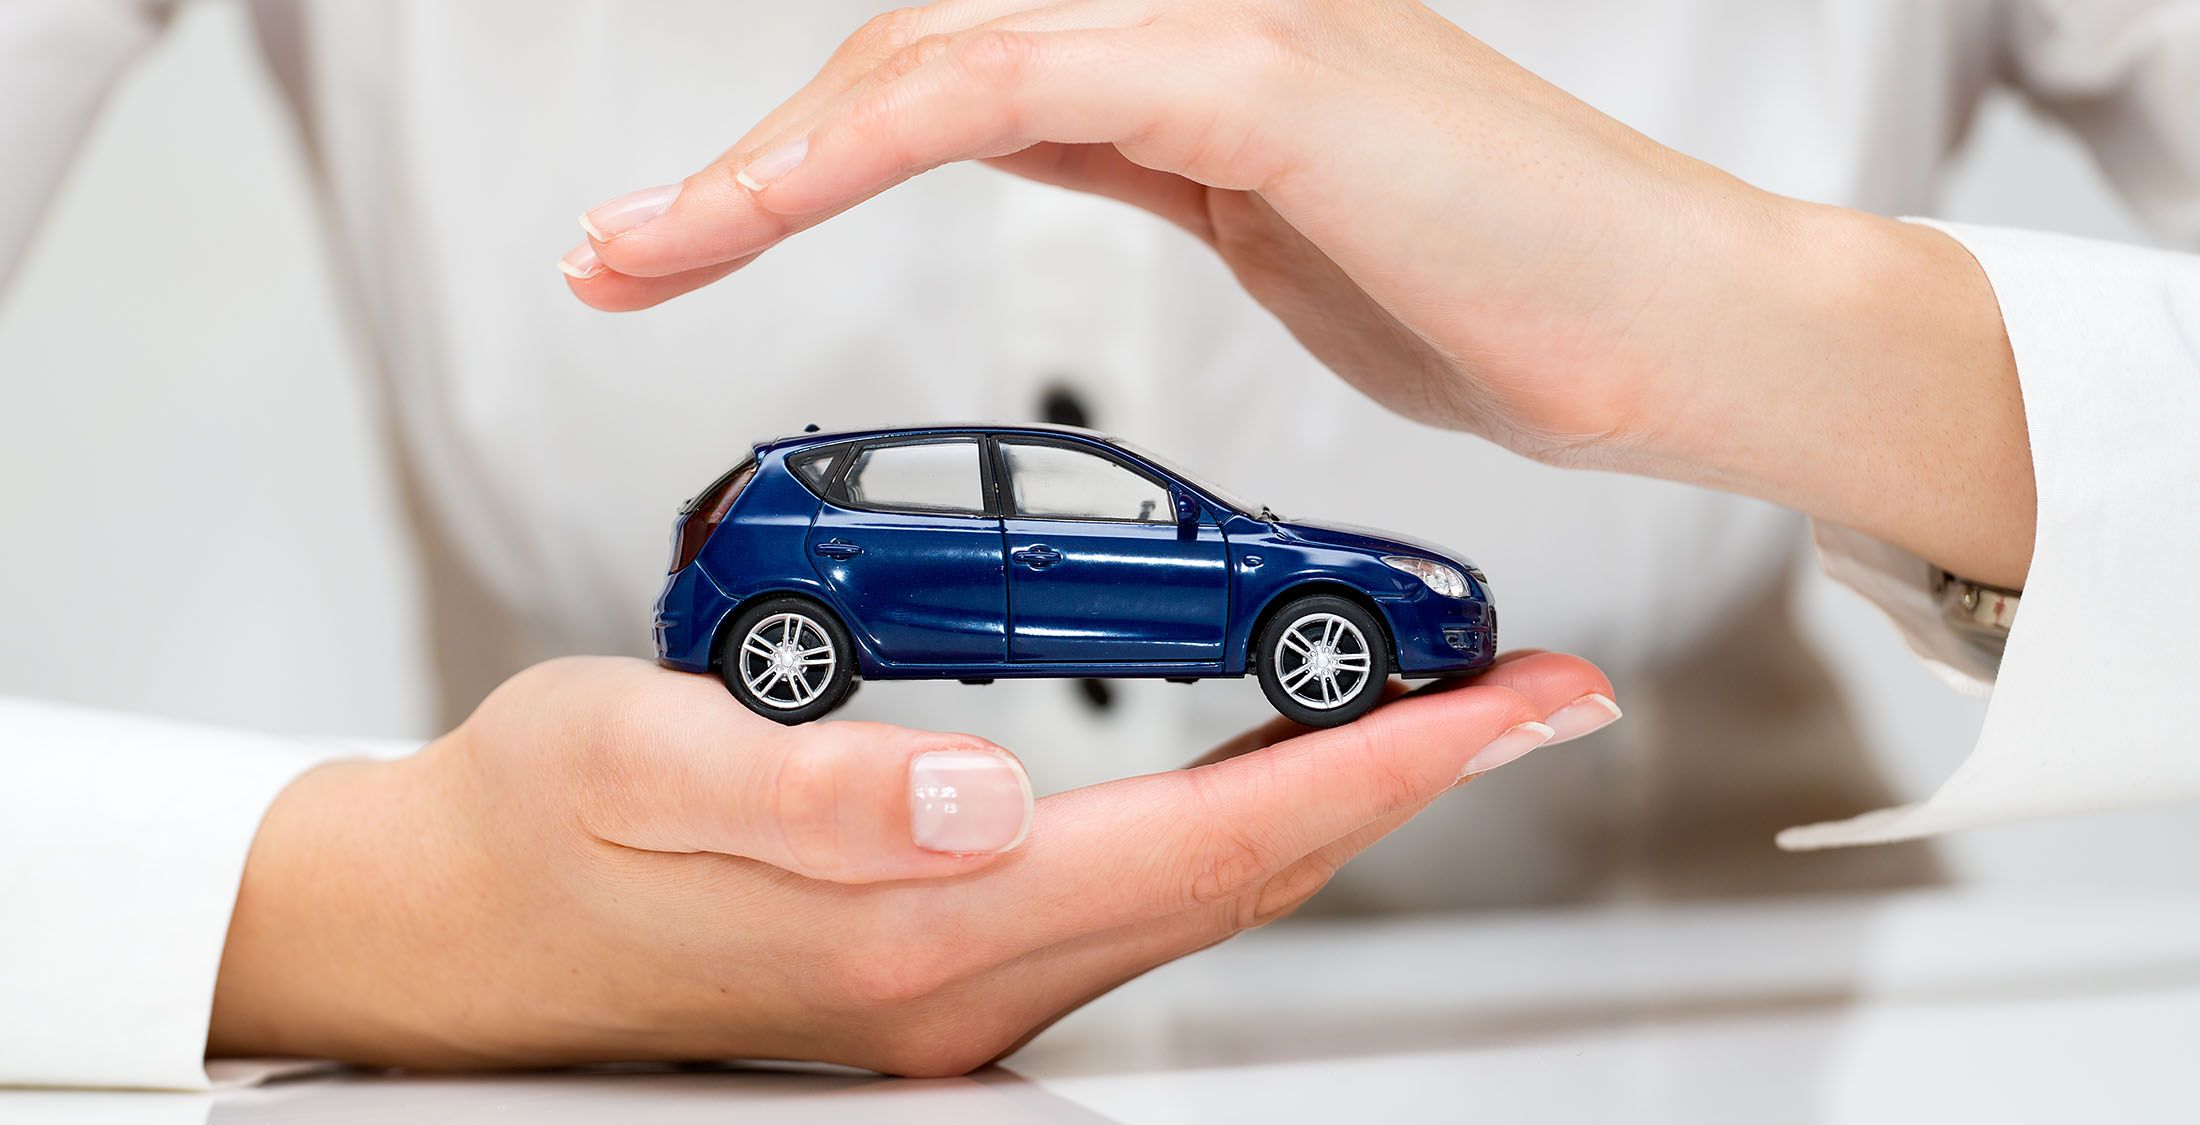 woman holding small car in hands